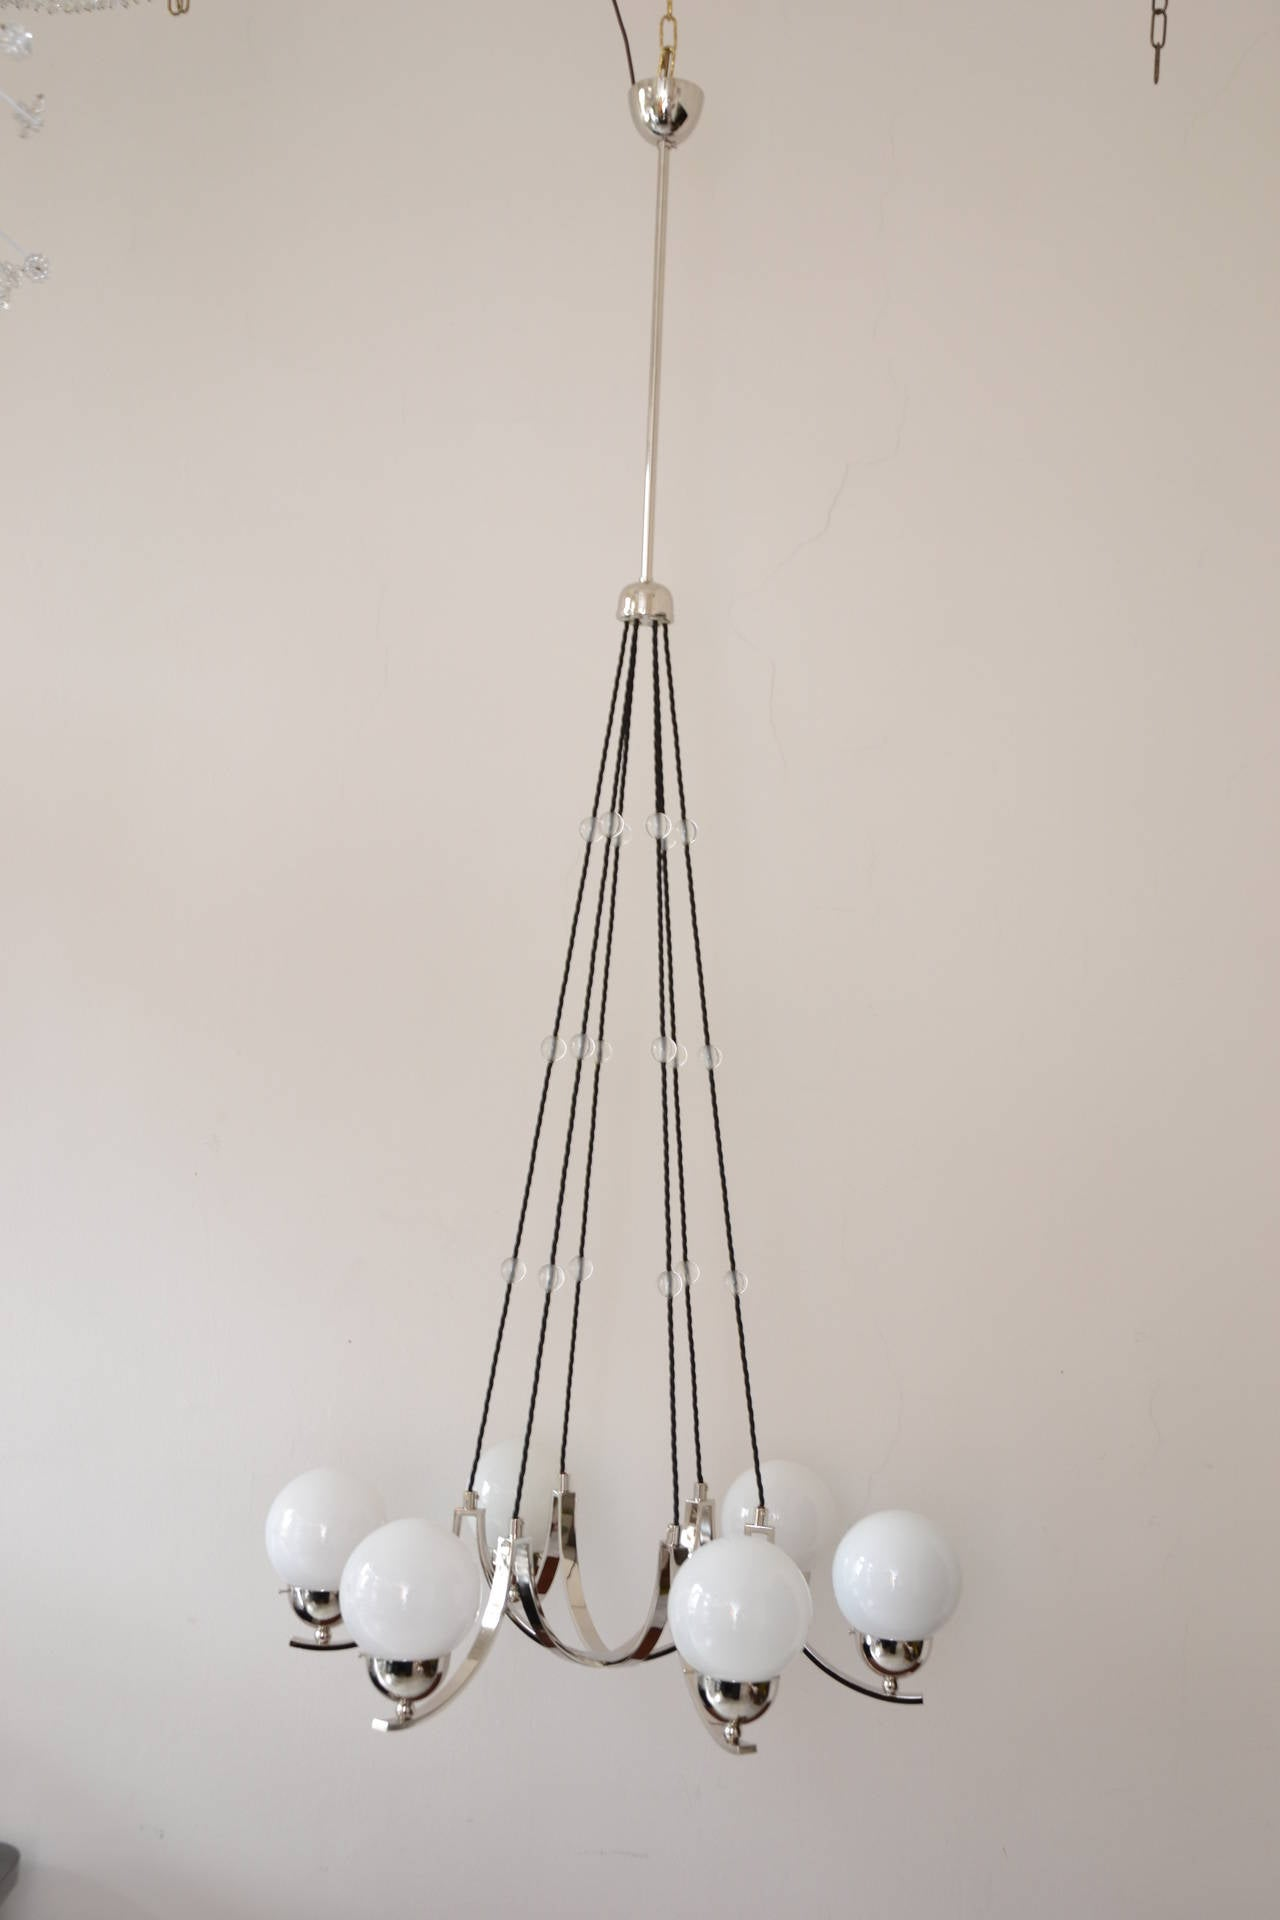 Early 20th Century Art Deco Nickel-Plated Chandelier For Sale